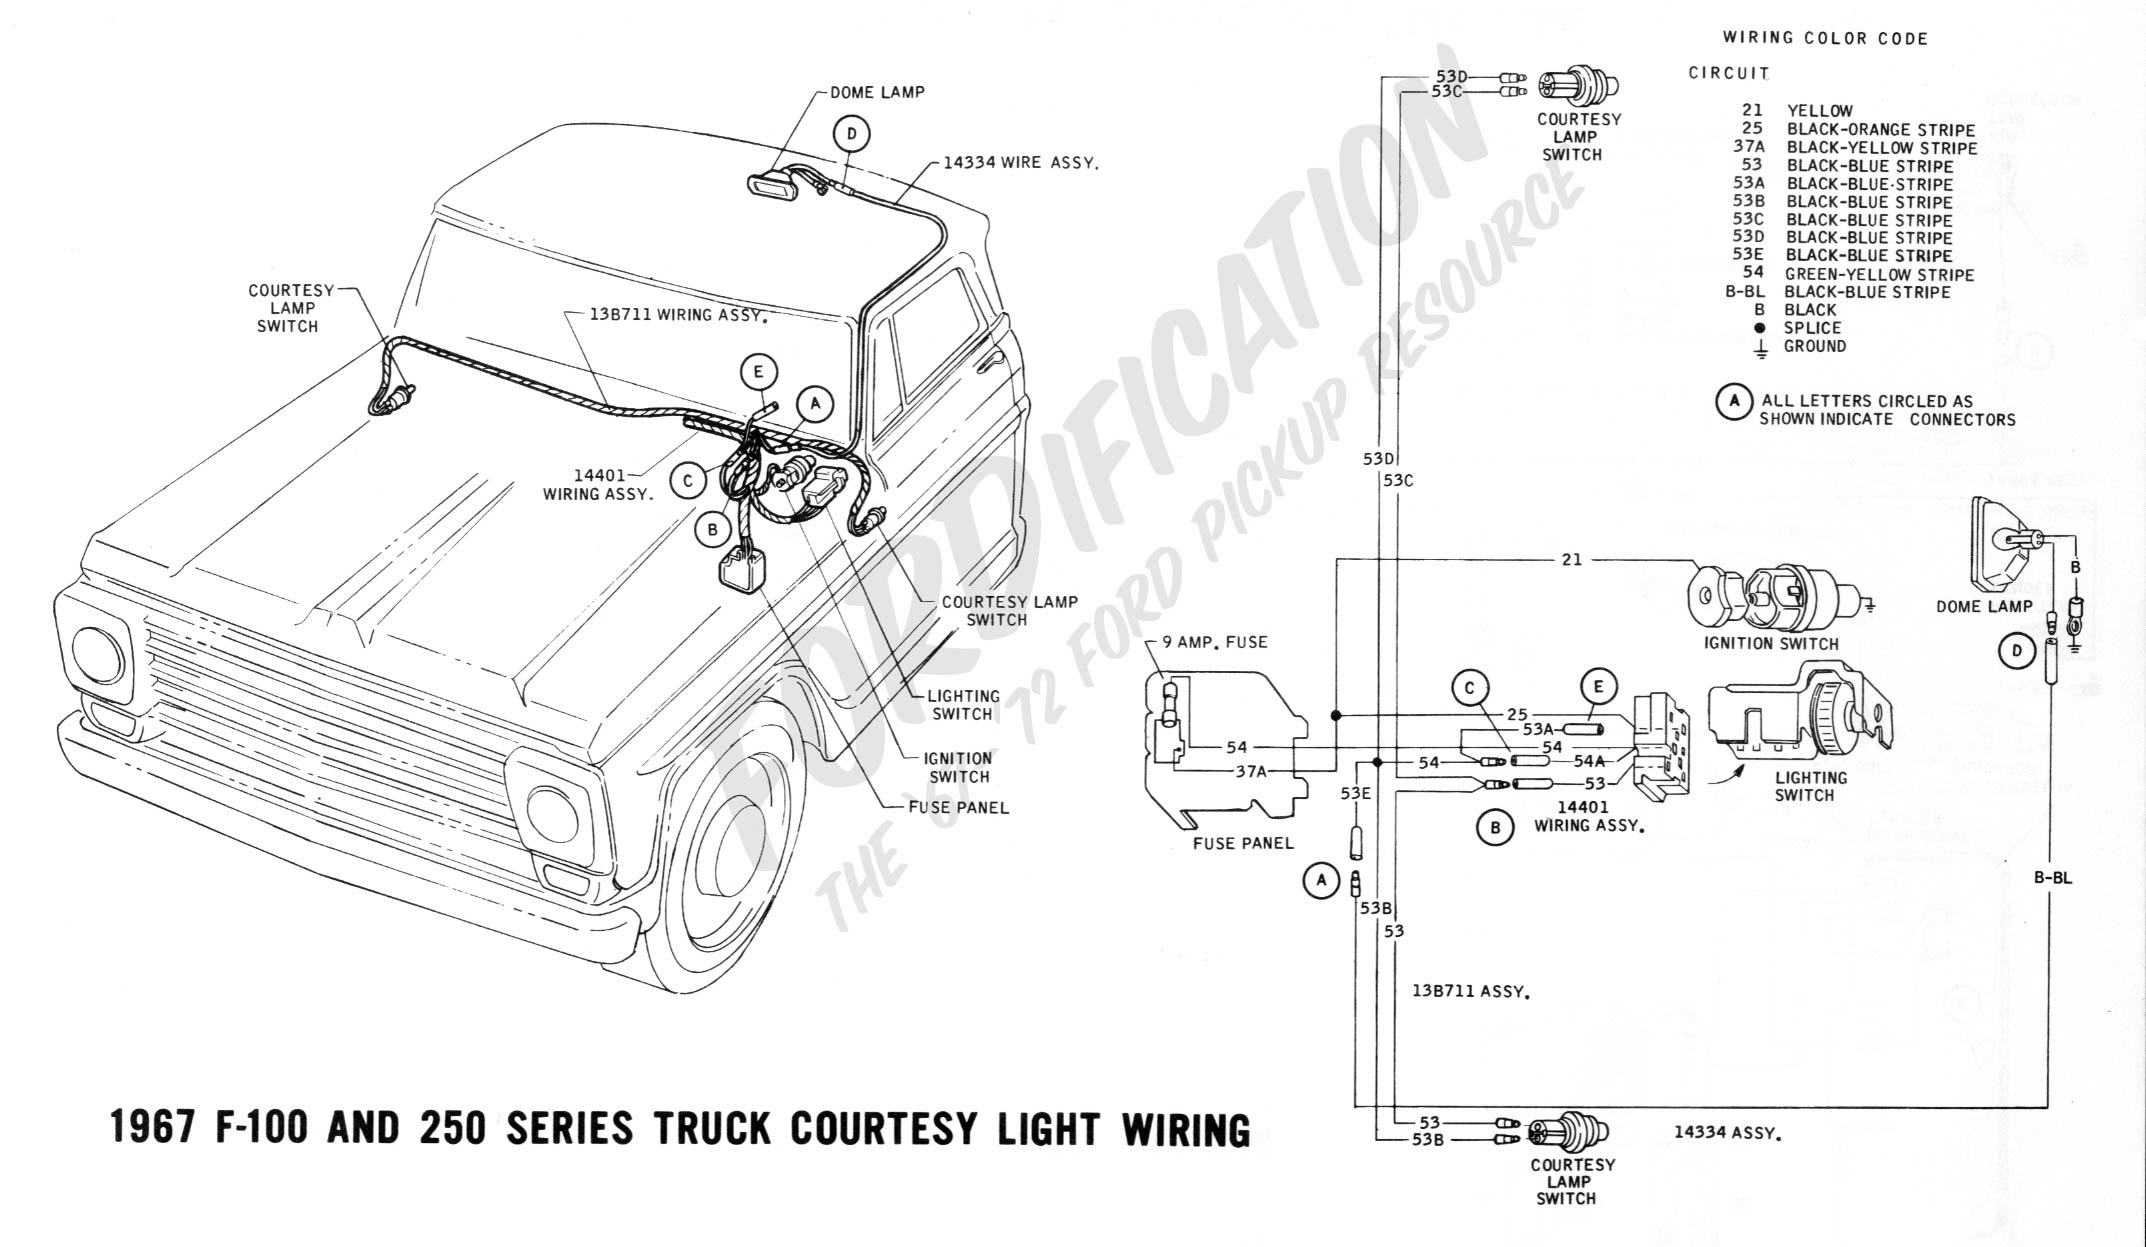 72 ford f100 dash wiring diagram dometic thermostat truck technical drawings and schematics section h